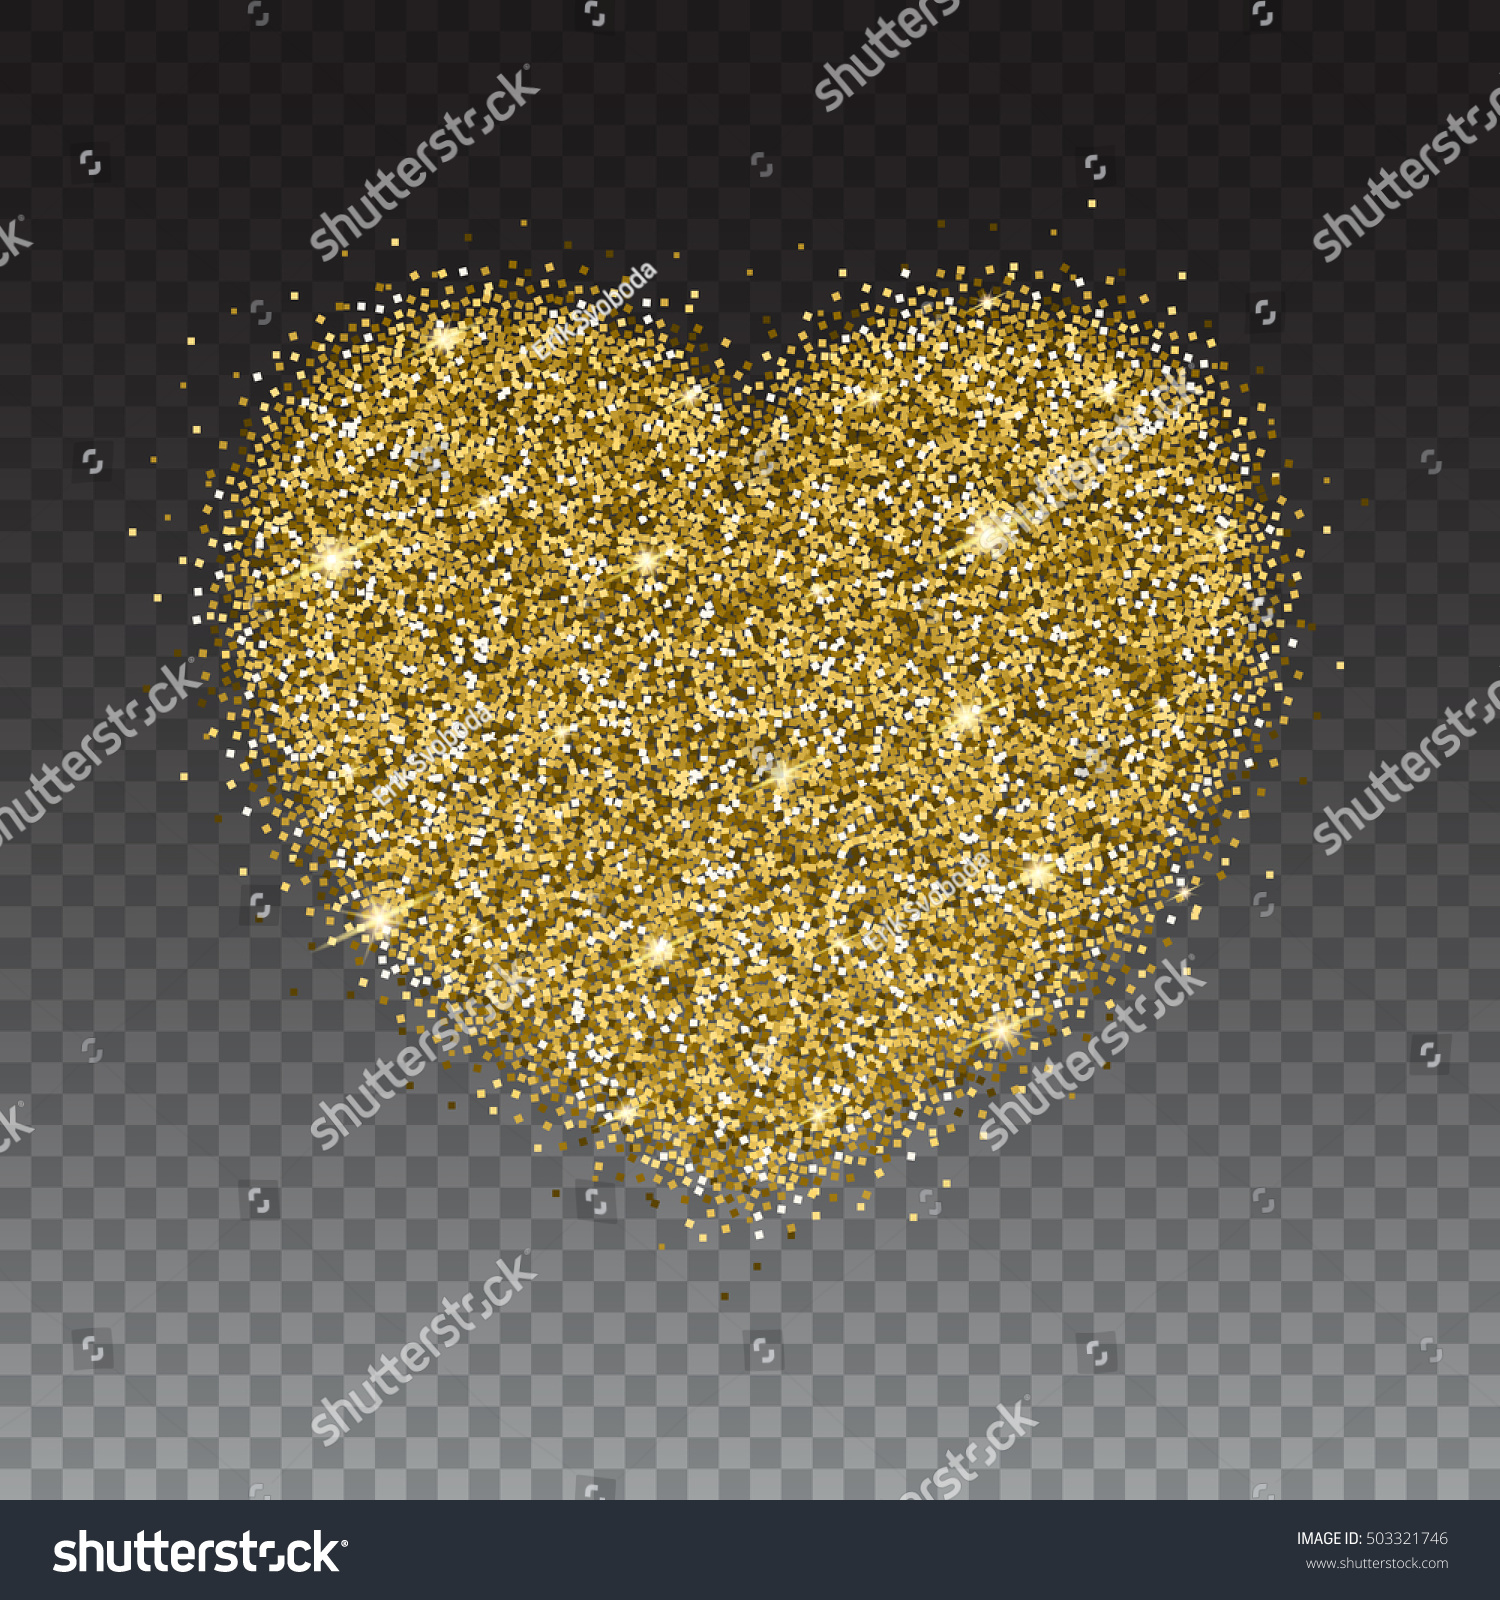 Gold glitter bright vector transparent background golden sparkles - Icon Of Heart With Gold Sparkles And Glitter Glow Light Bright Sequins Sparkle